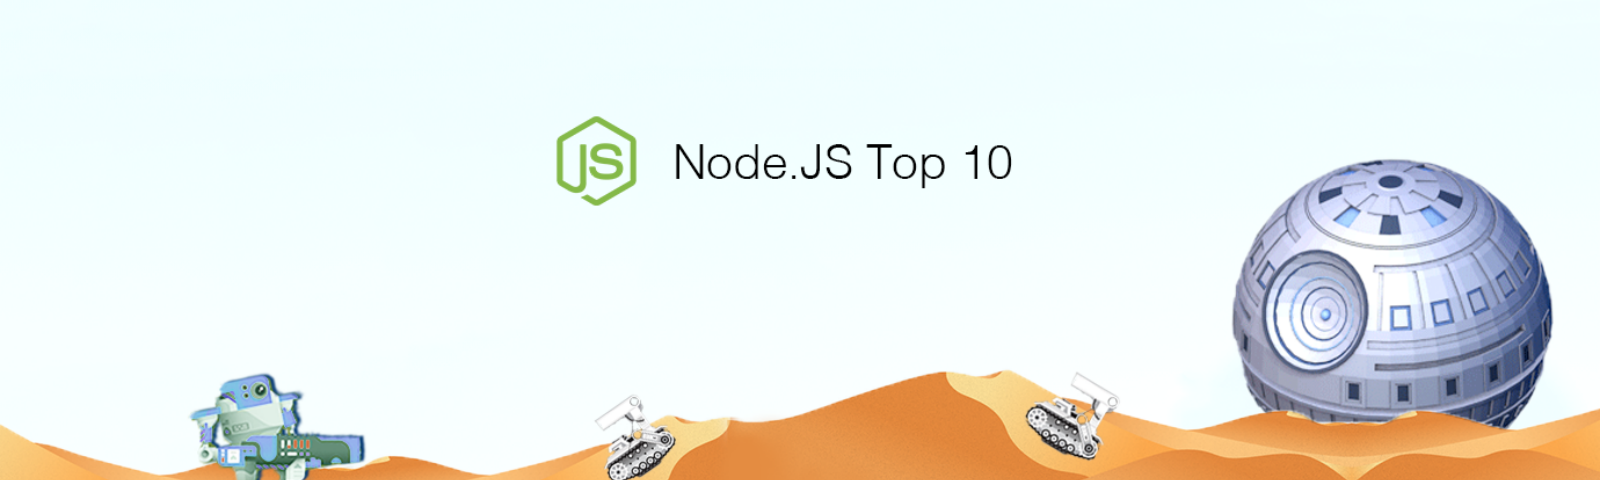 Node js Top 10 Articles for the Past Month (v Feb 2018)